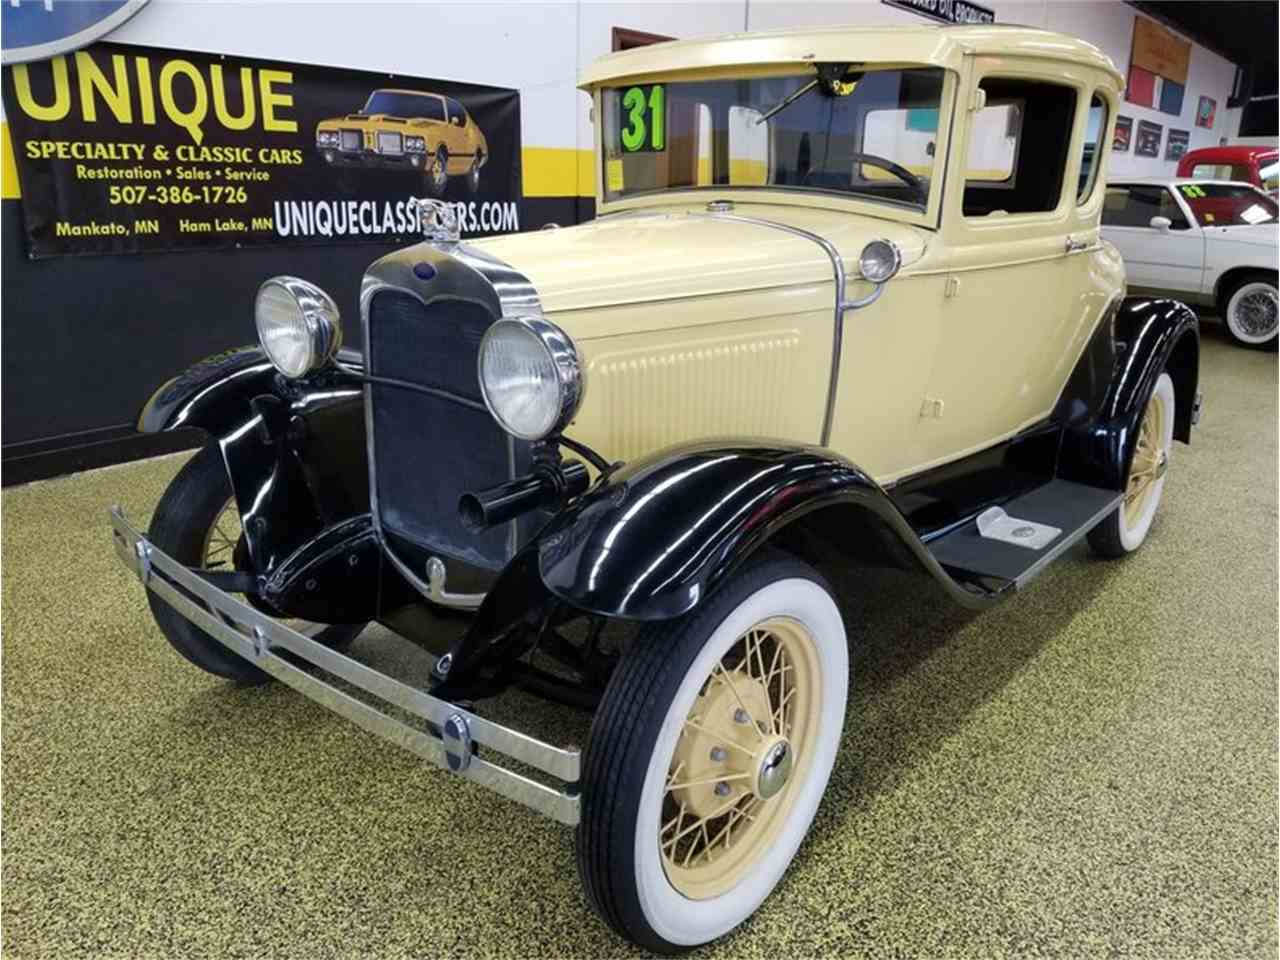 Large Picture of '31 Model A 5 window coupe with rumble seat - M8ZN